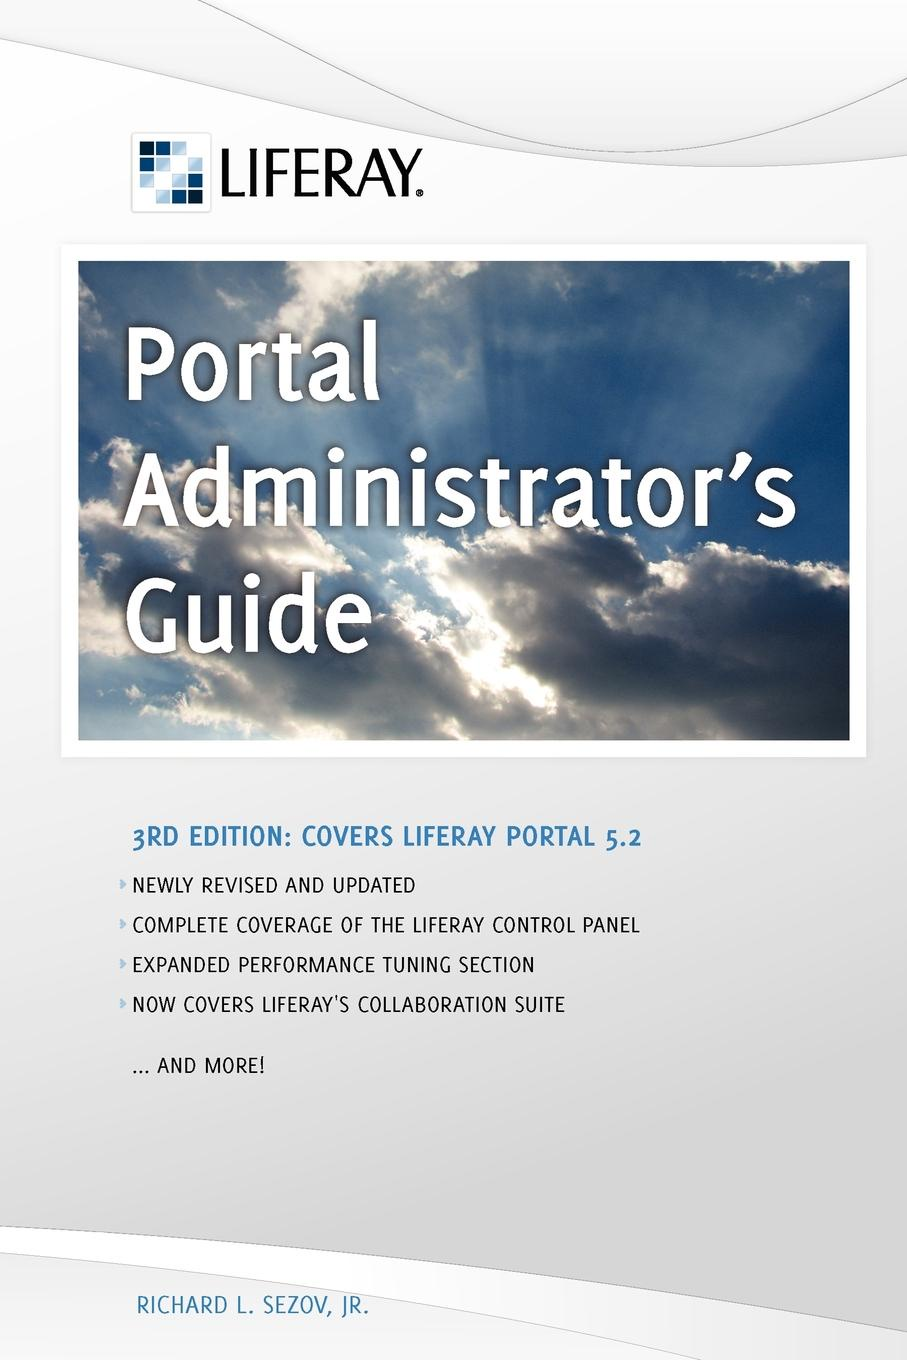 Richard Sezov Liferay Portal Administrator.s Guide, 3rd Edition charlie wing how your house works a visual guide to understanding and maintaining your home updated and expanded